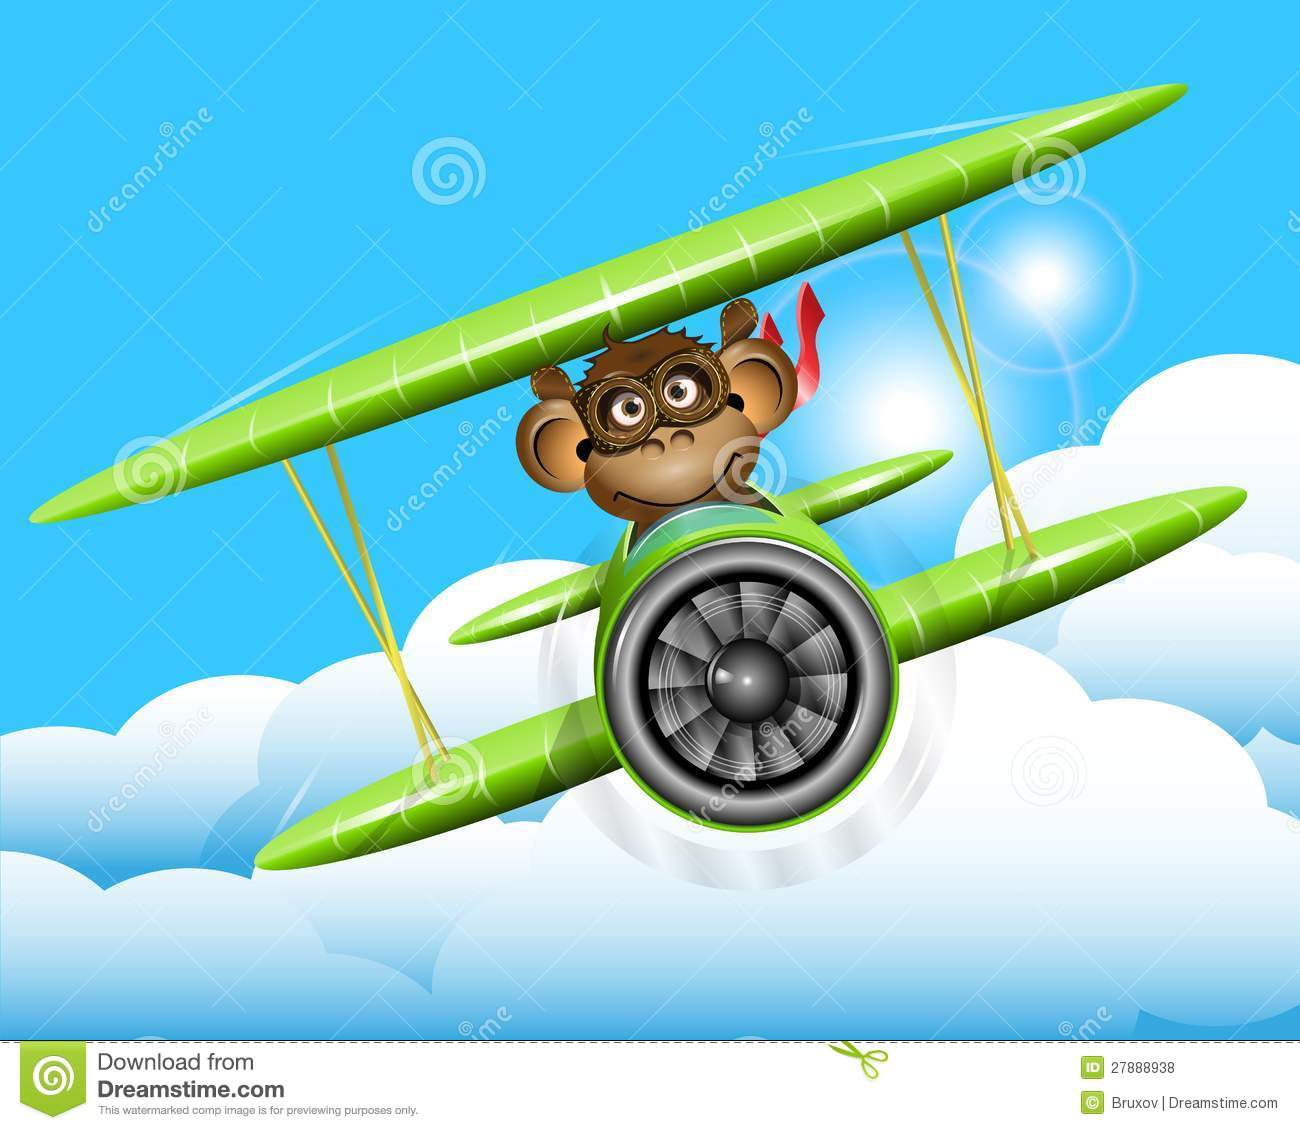 airplane kid video with Royalty Free Stock Photos Monkey Plane Image27888938 on Apple Crafts For Preschool also Dads look at the disney dream together with Images Transportsignalisation in addition Eagle Mask Template furthermore Watch.